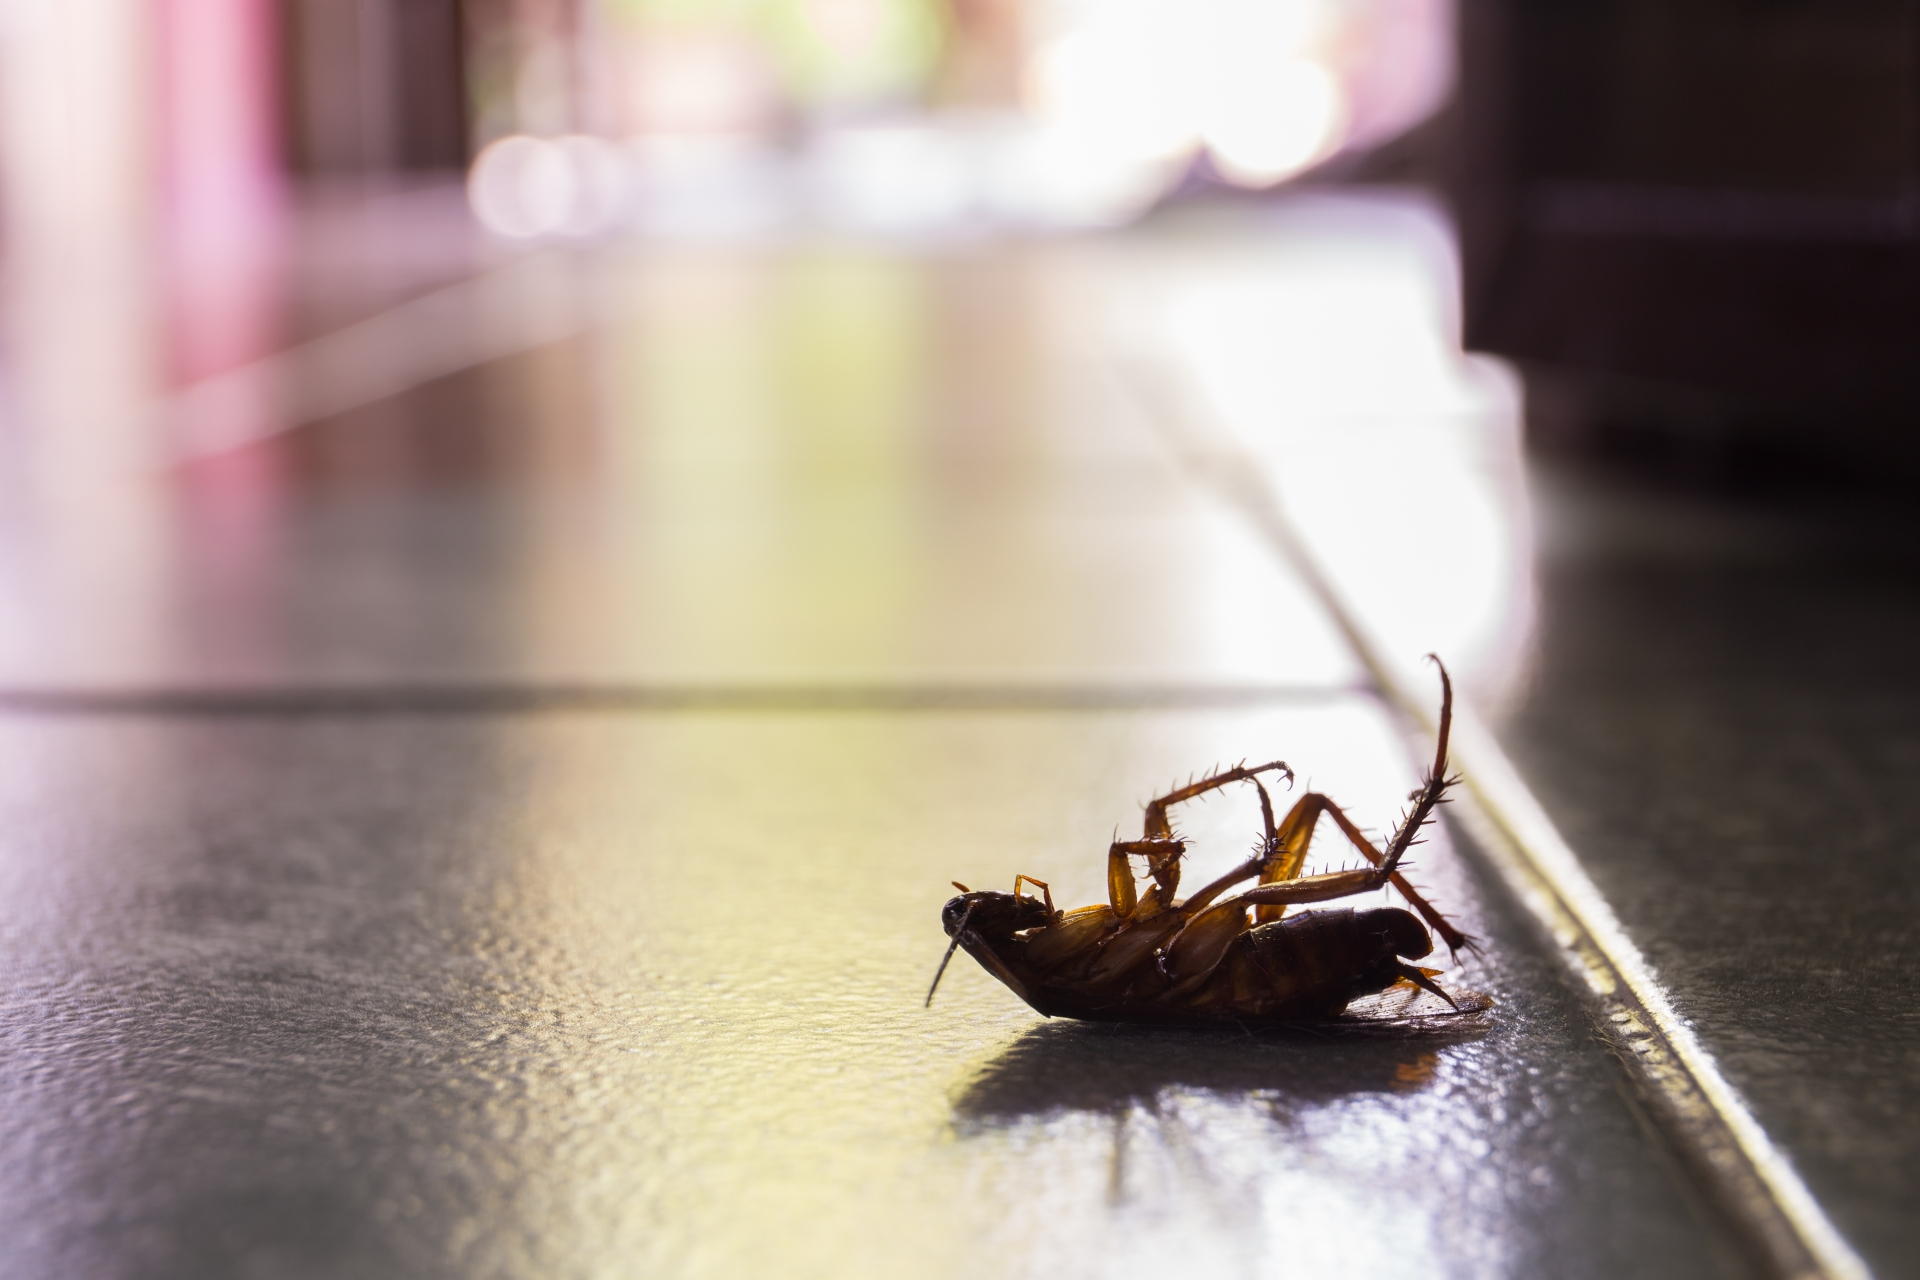 Cockroach Control, Pest Control in Roehampton, SW15. Call Now 020 8166 9746